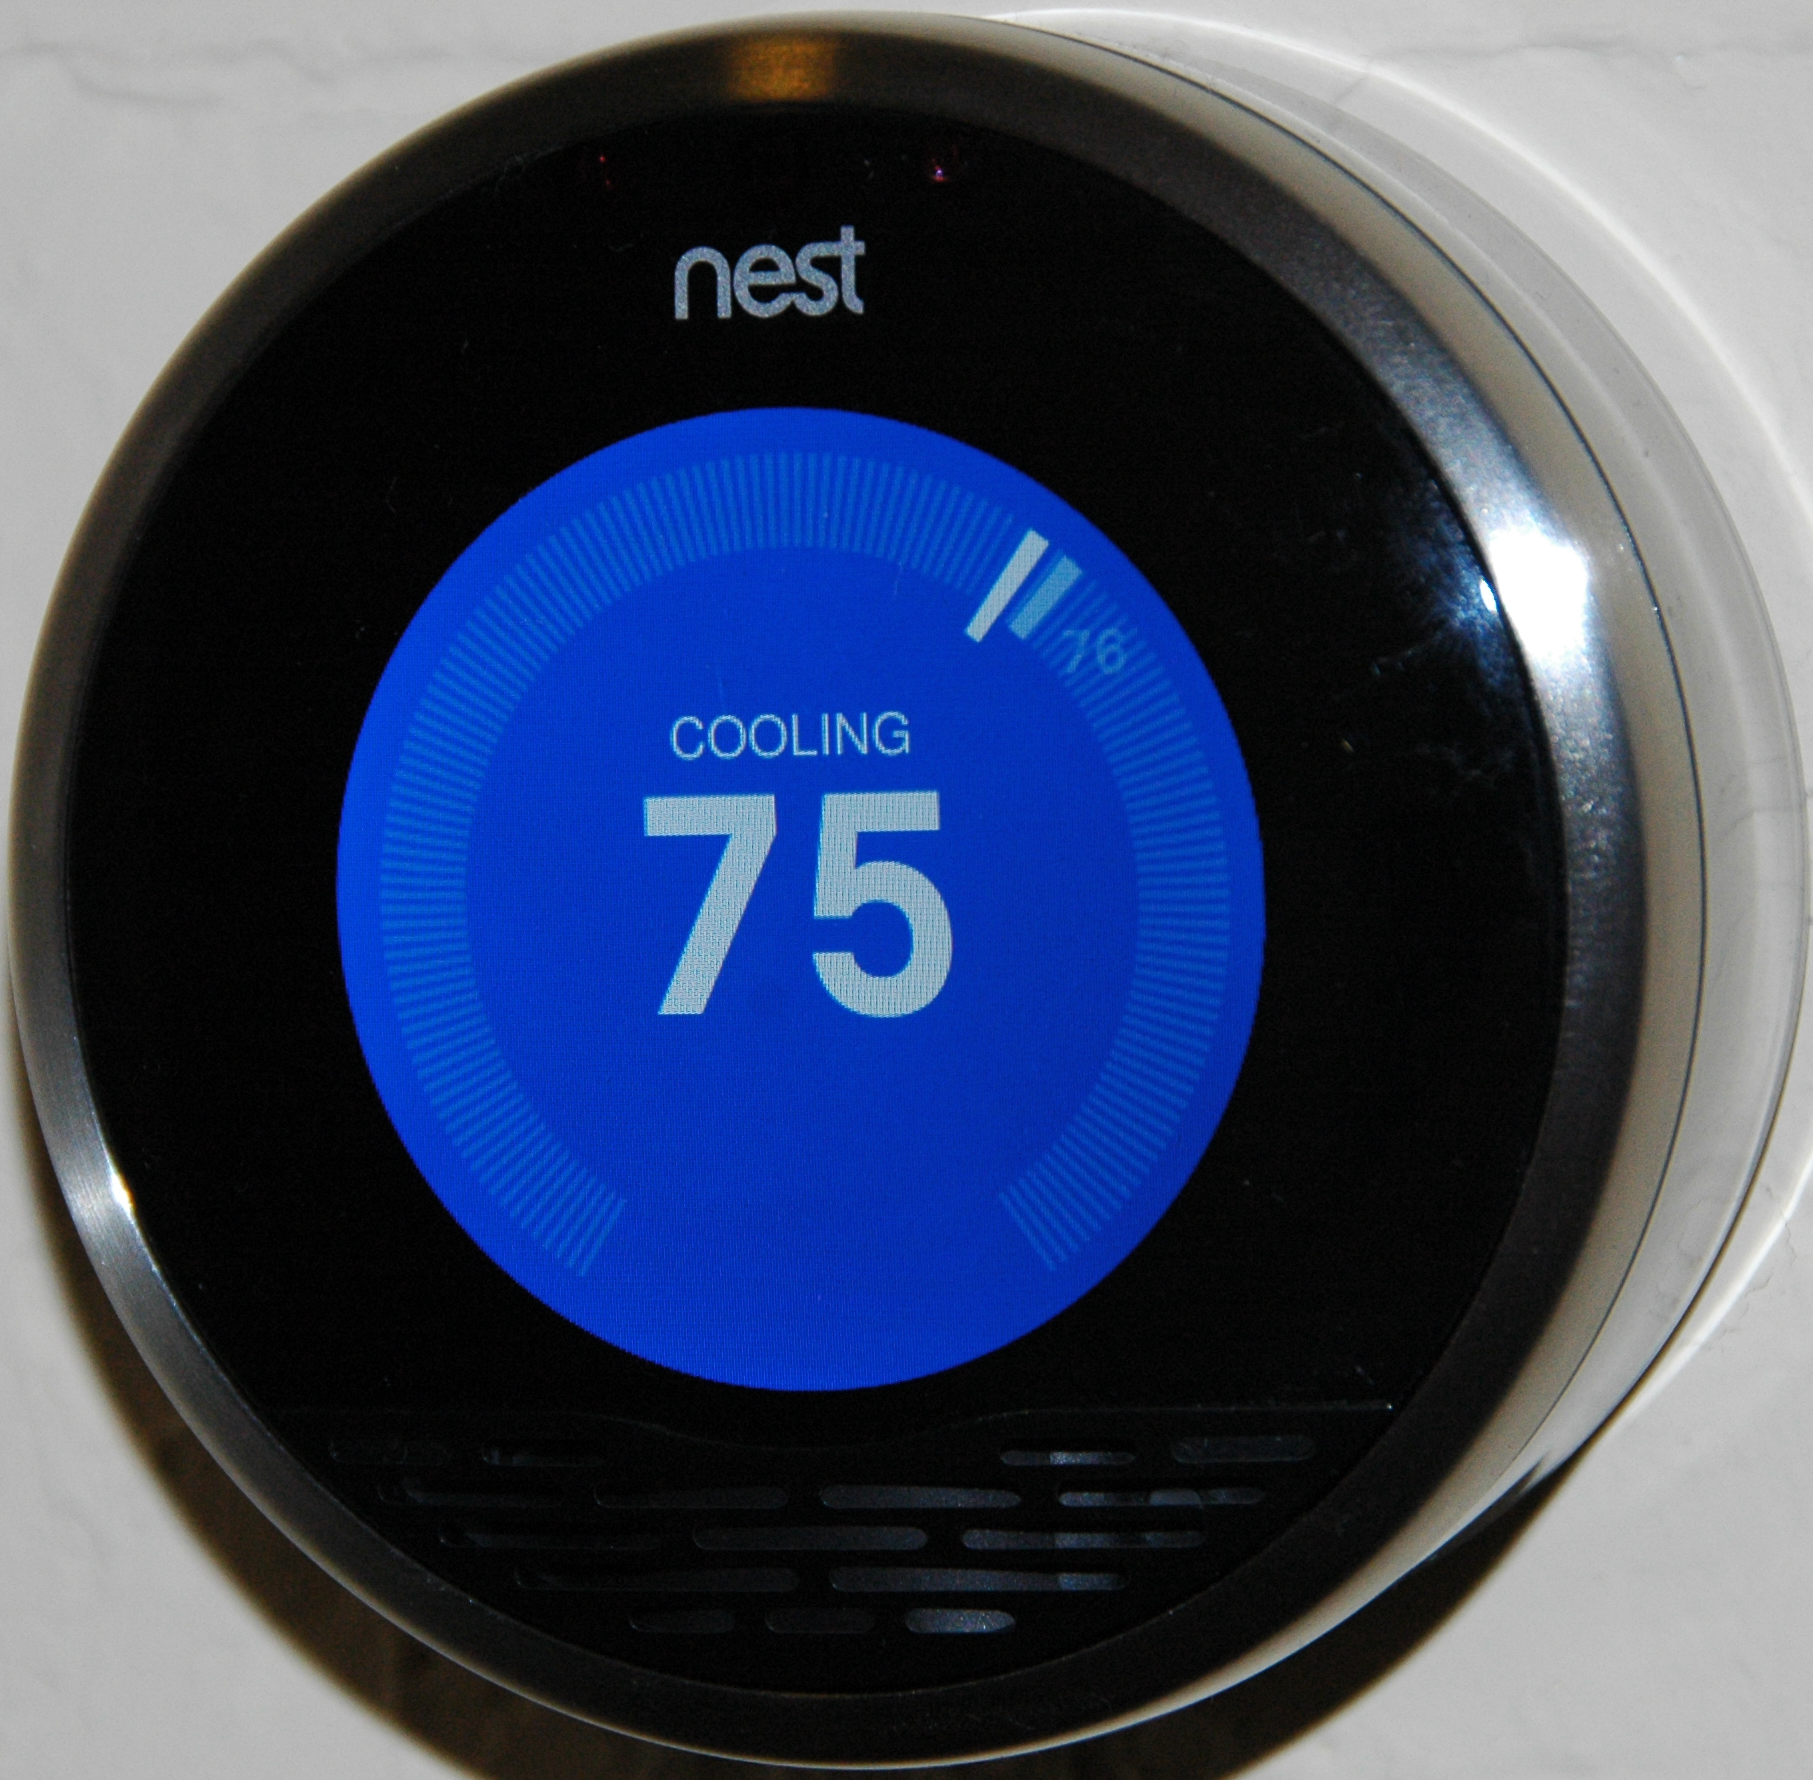 Difference between Ecobee and Nest